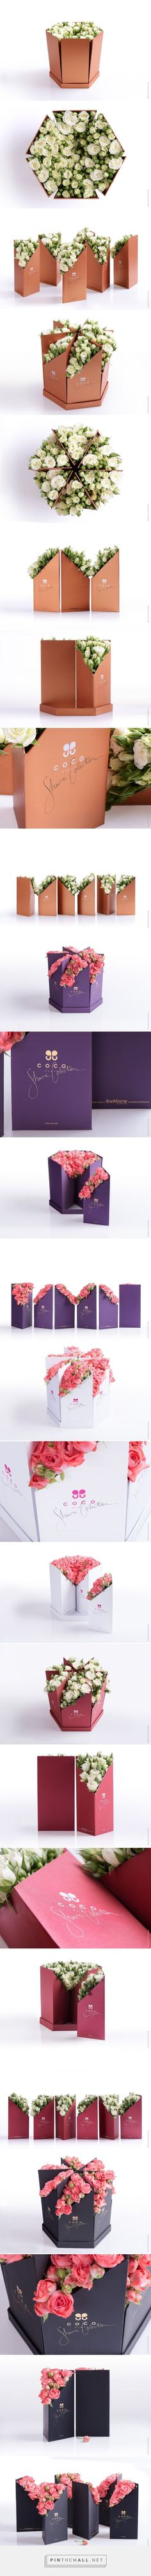 Coco Fiori - Flowers packaging made for sharing - Design by Backbone Branding (Armenia) - http://www.packagingoftheworld.com/2016/07/coco-fiori-share-collection.html